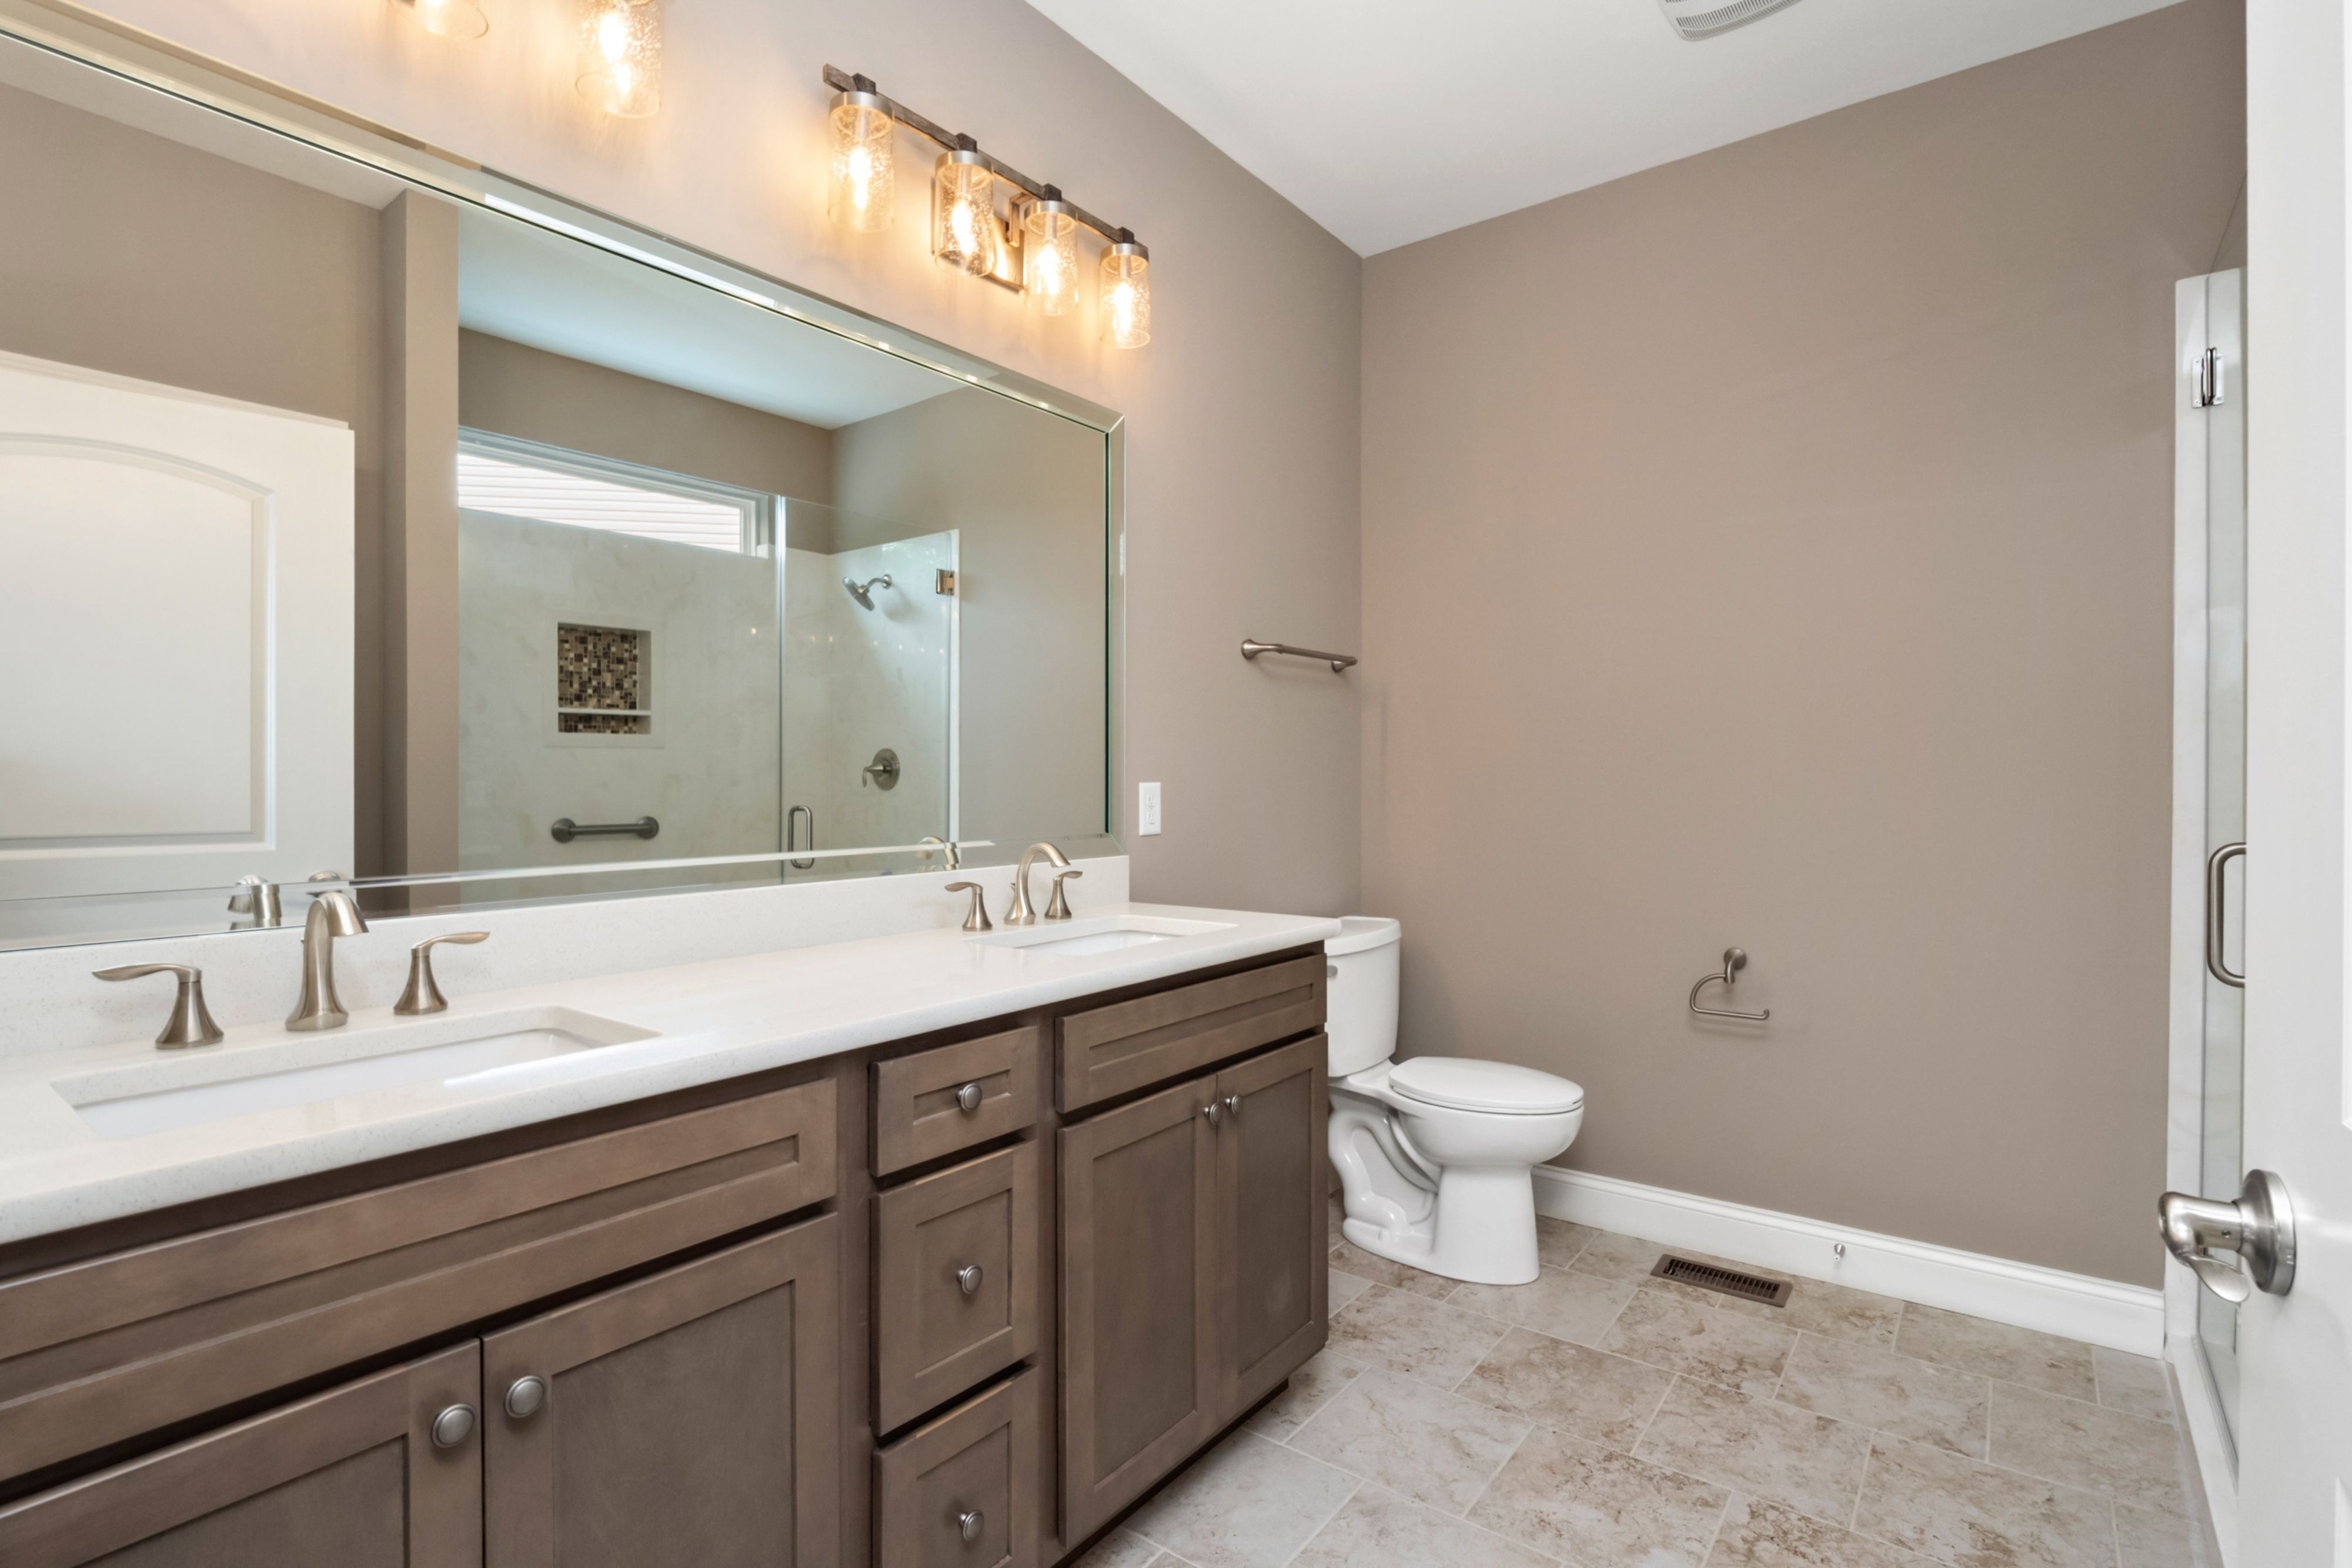 Bathroom featured in The Grand Columbia II By The Kemp Homes Company  in St. Louis, MO